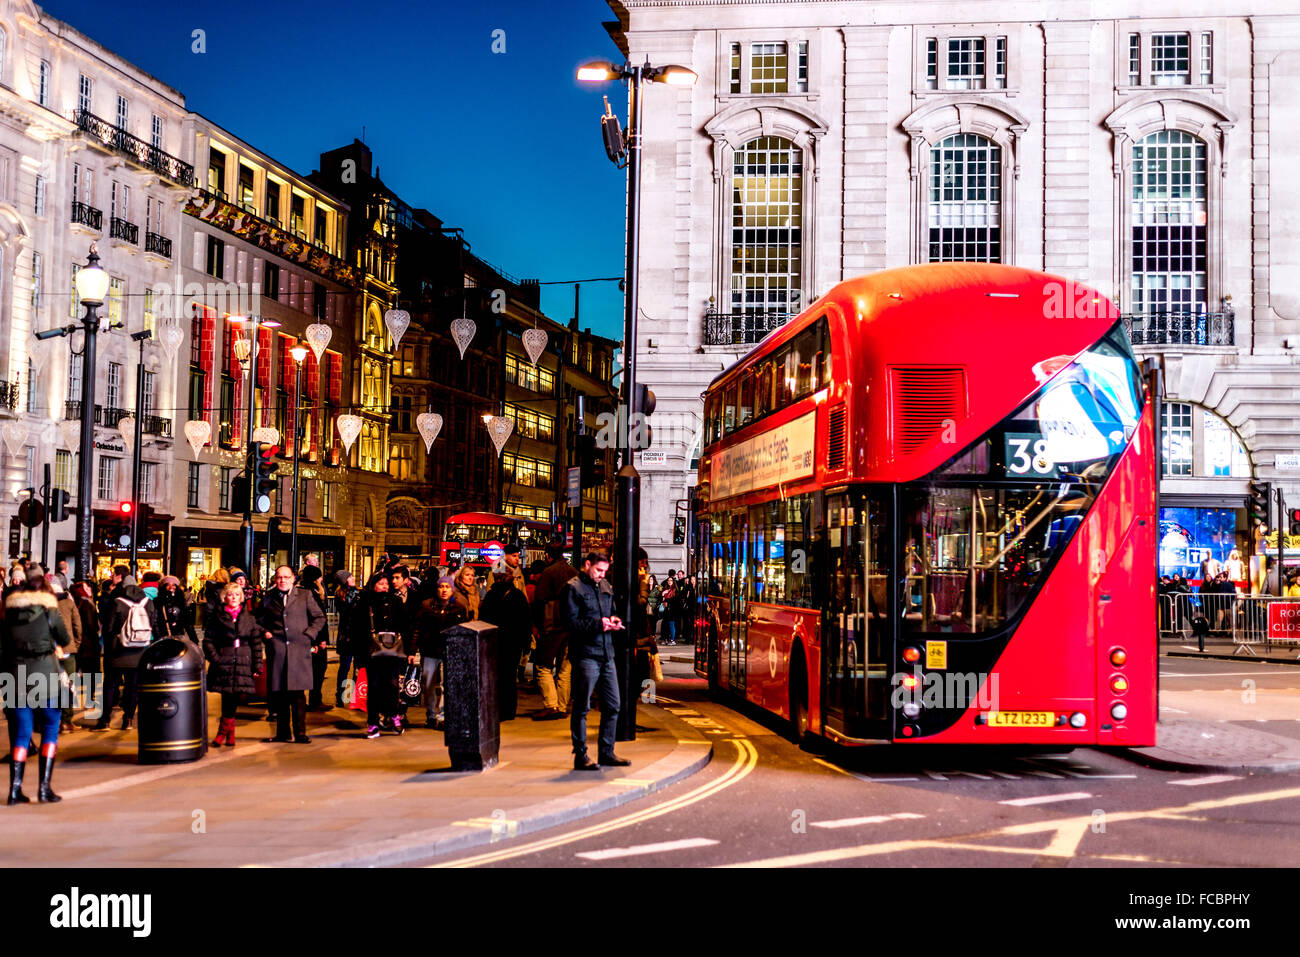 Red London bus at Picadilly Circus, London - Stock Image